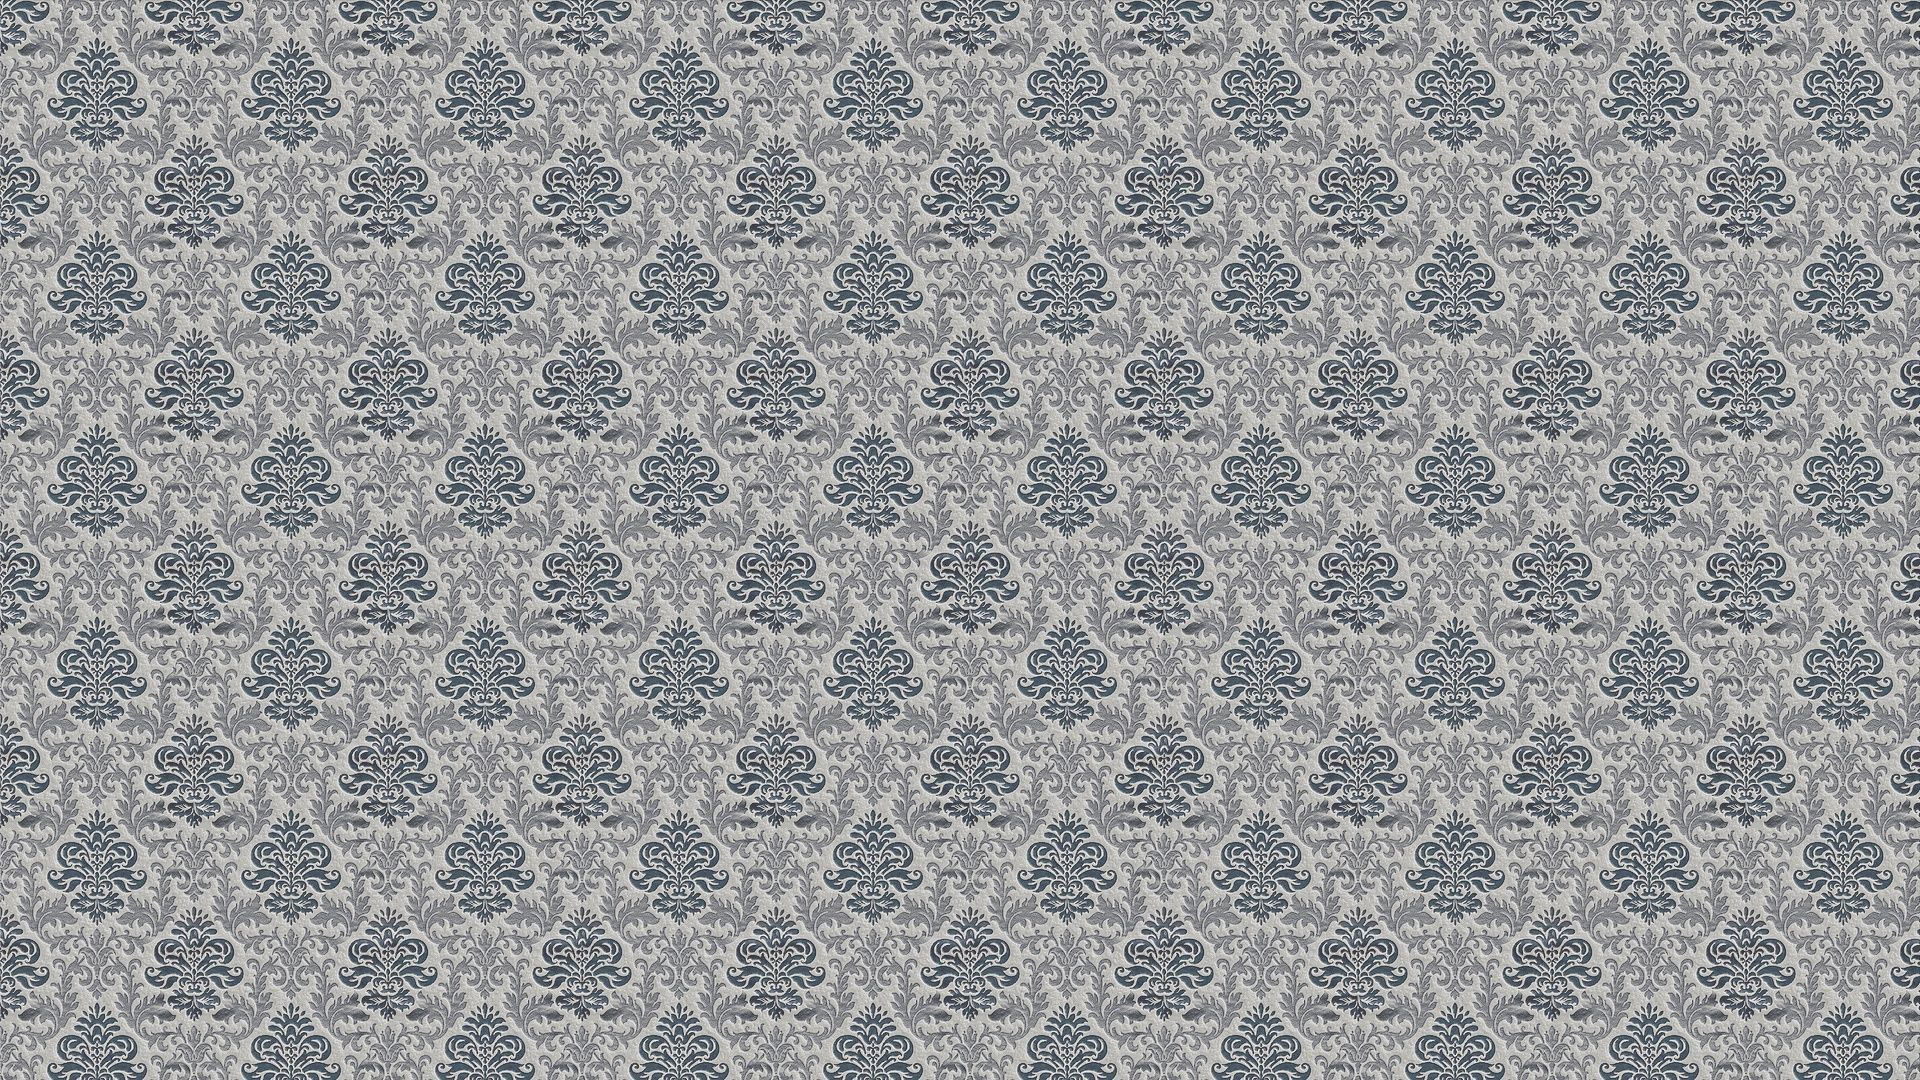 The Texture Of The Old Patterned Wallpaper Wallpaper